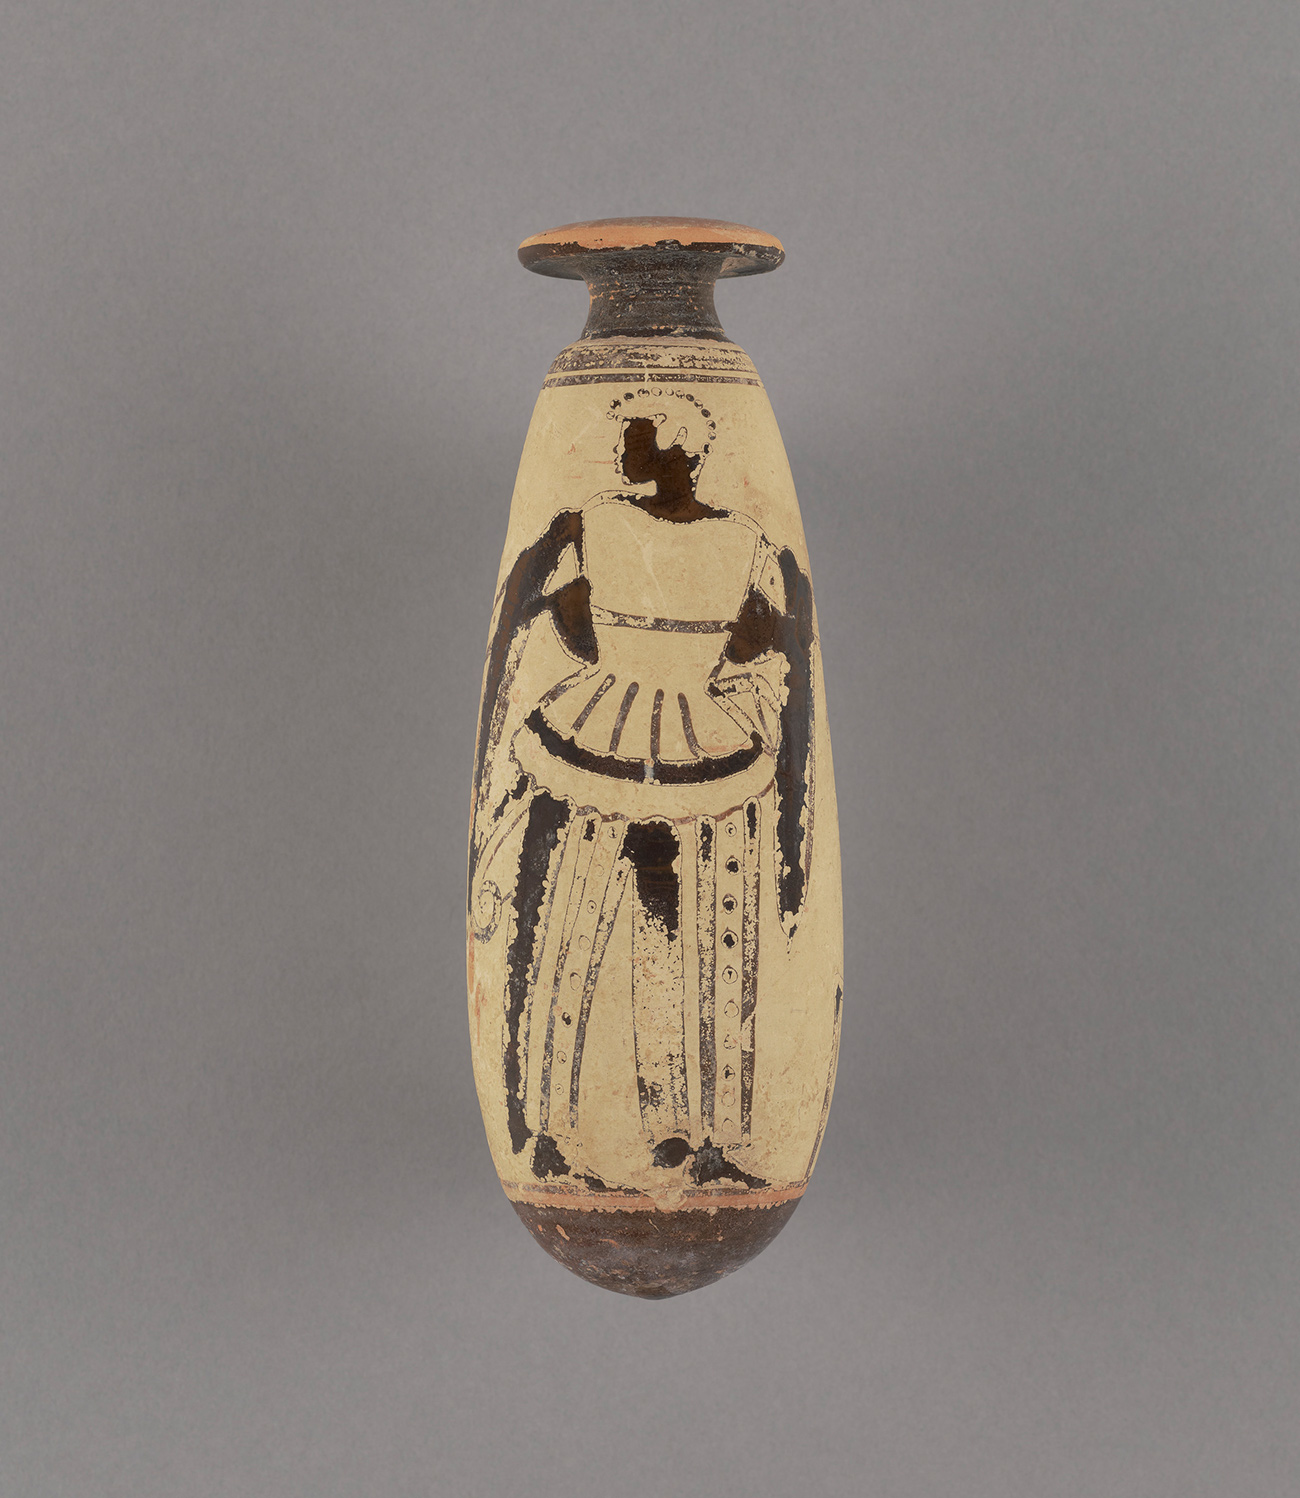 A small, narrow vase shows a man with black sink standing in elaborate garments